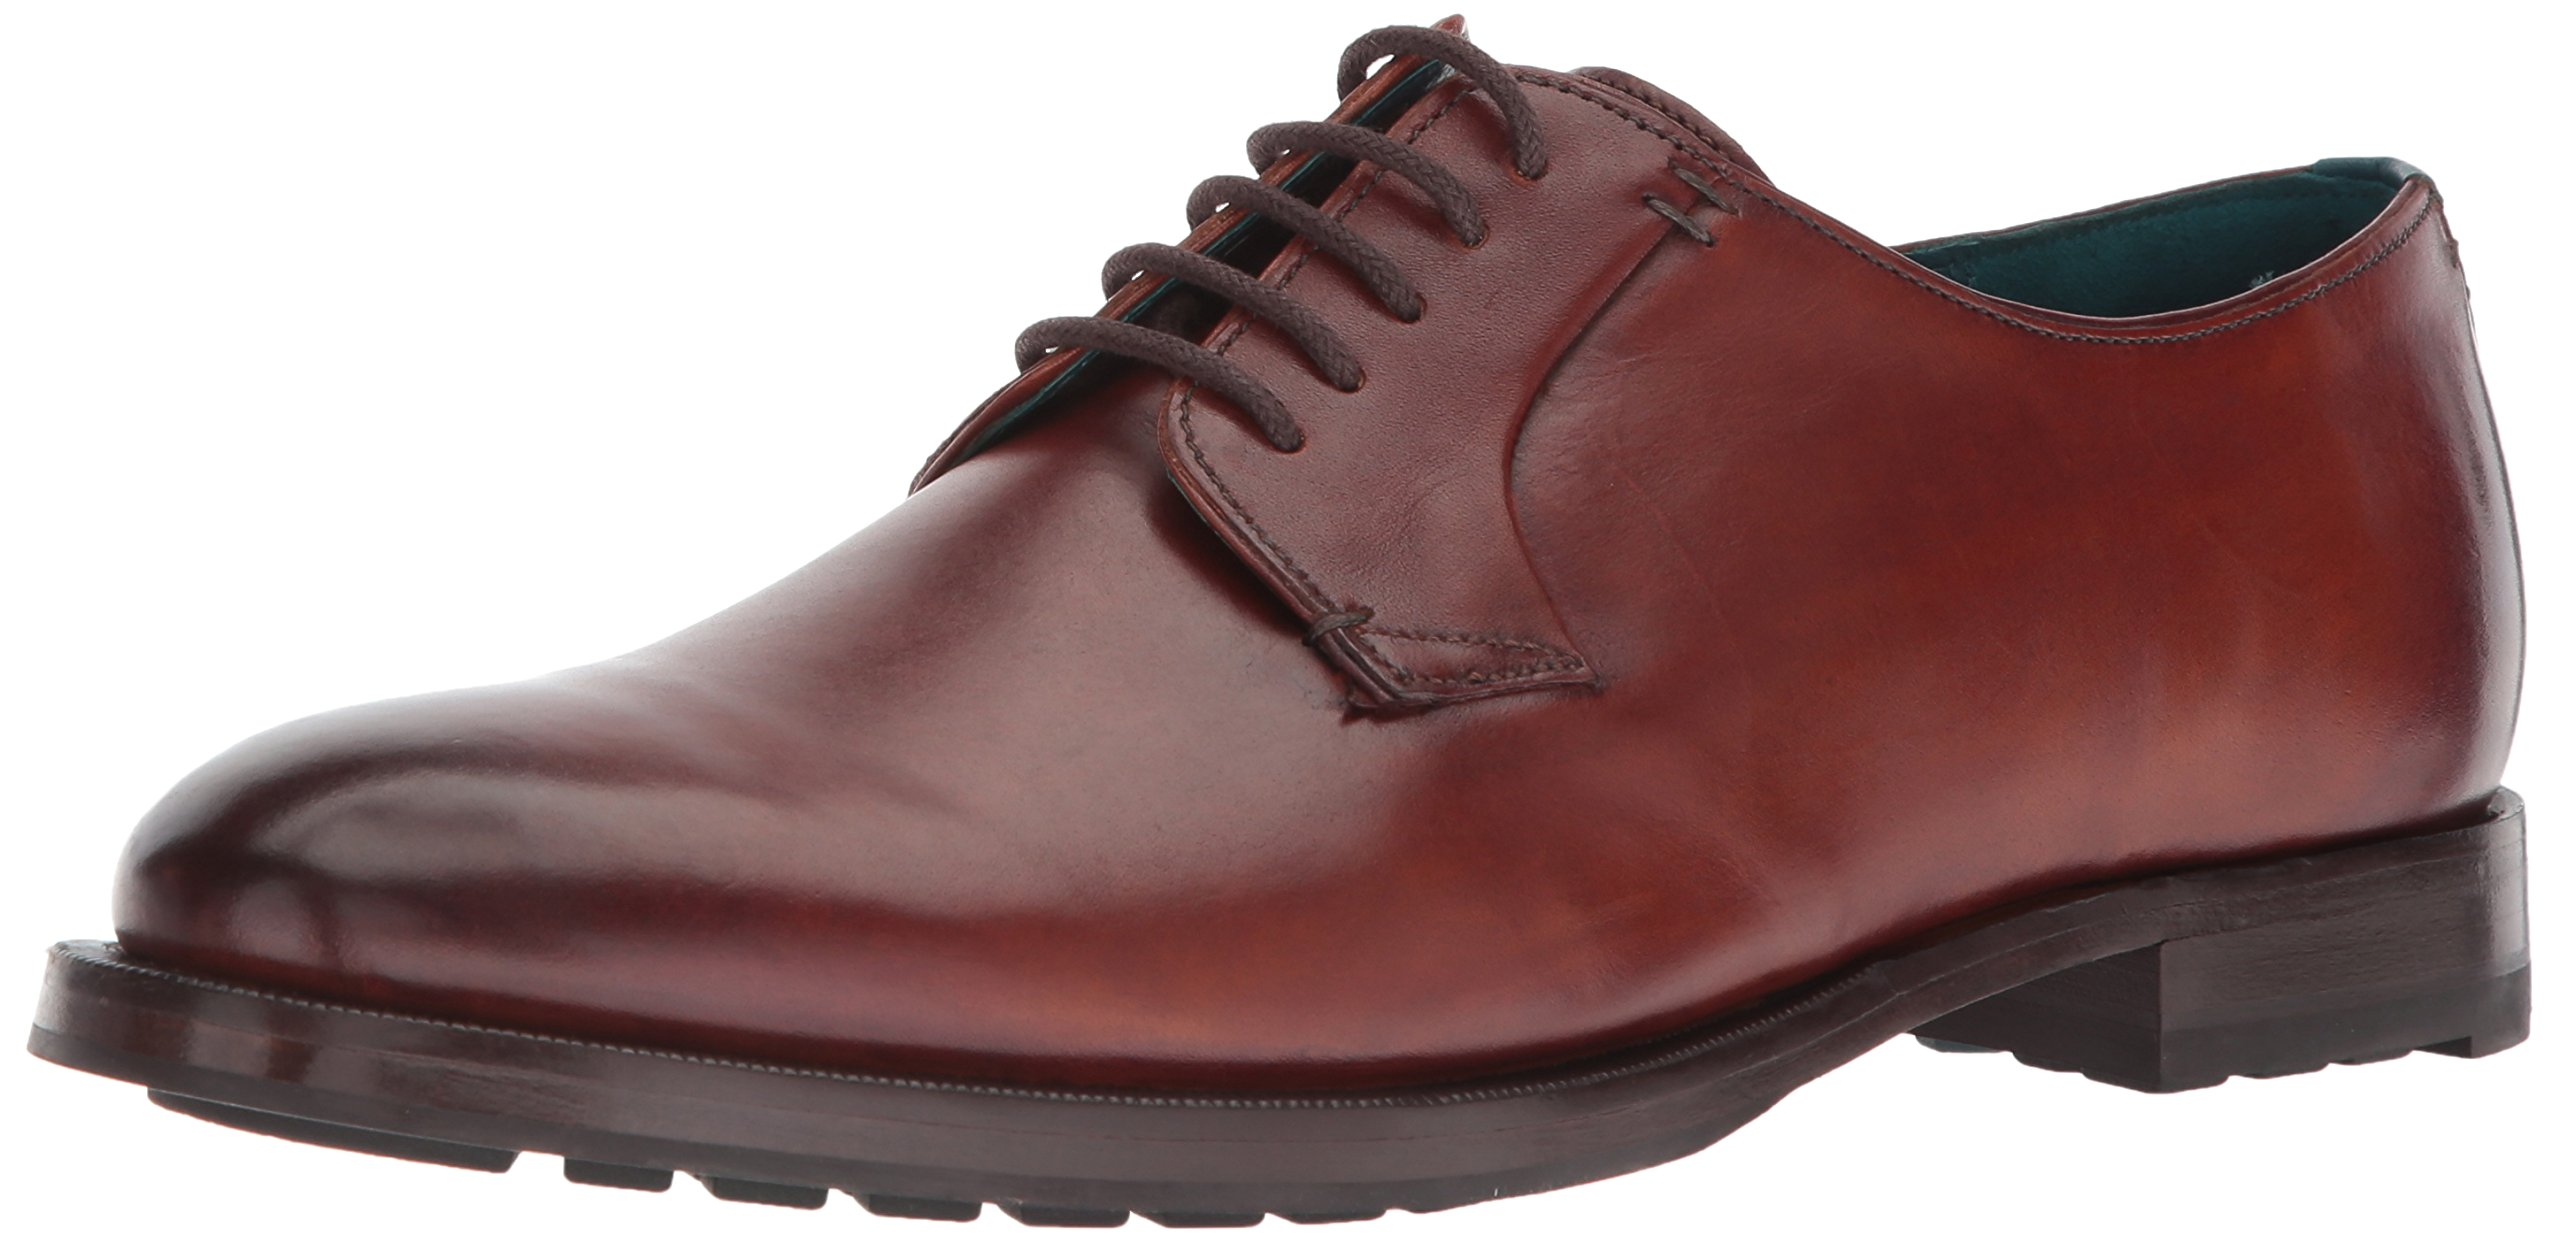 Ted Baker Men's Silice Oxford, Tan, 9.5 D(M) US